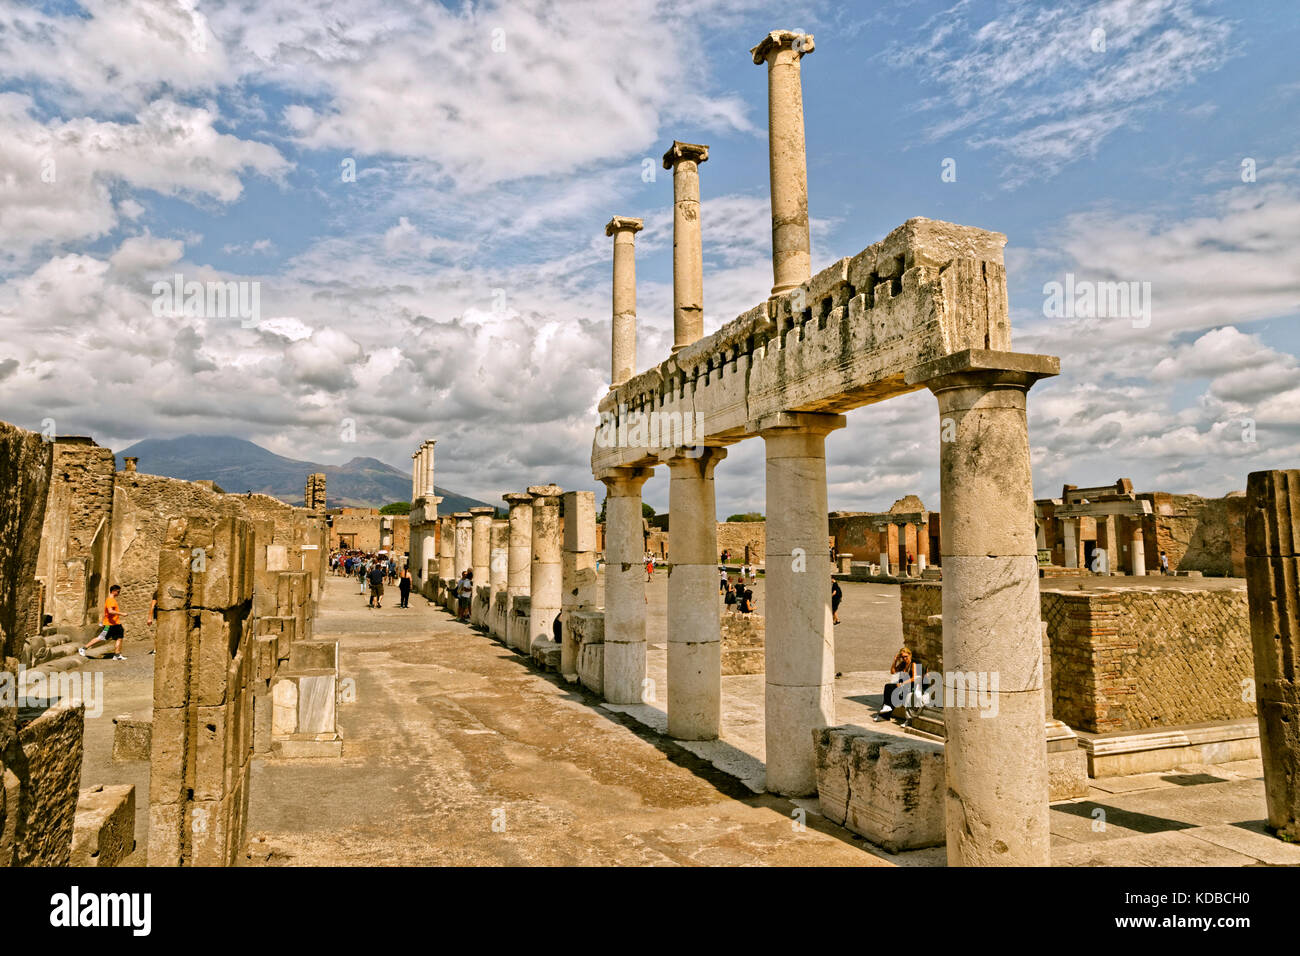 Arcadian way with doric columns at the Forum in the ruined Roman city of Pompeii at Pompei Scavi near Naples, Italy. - Stock Image